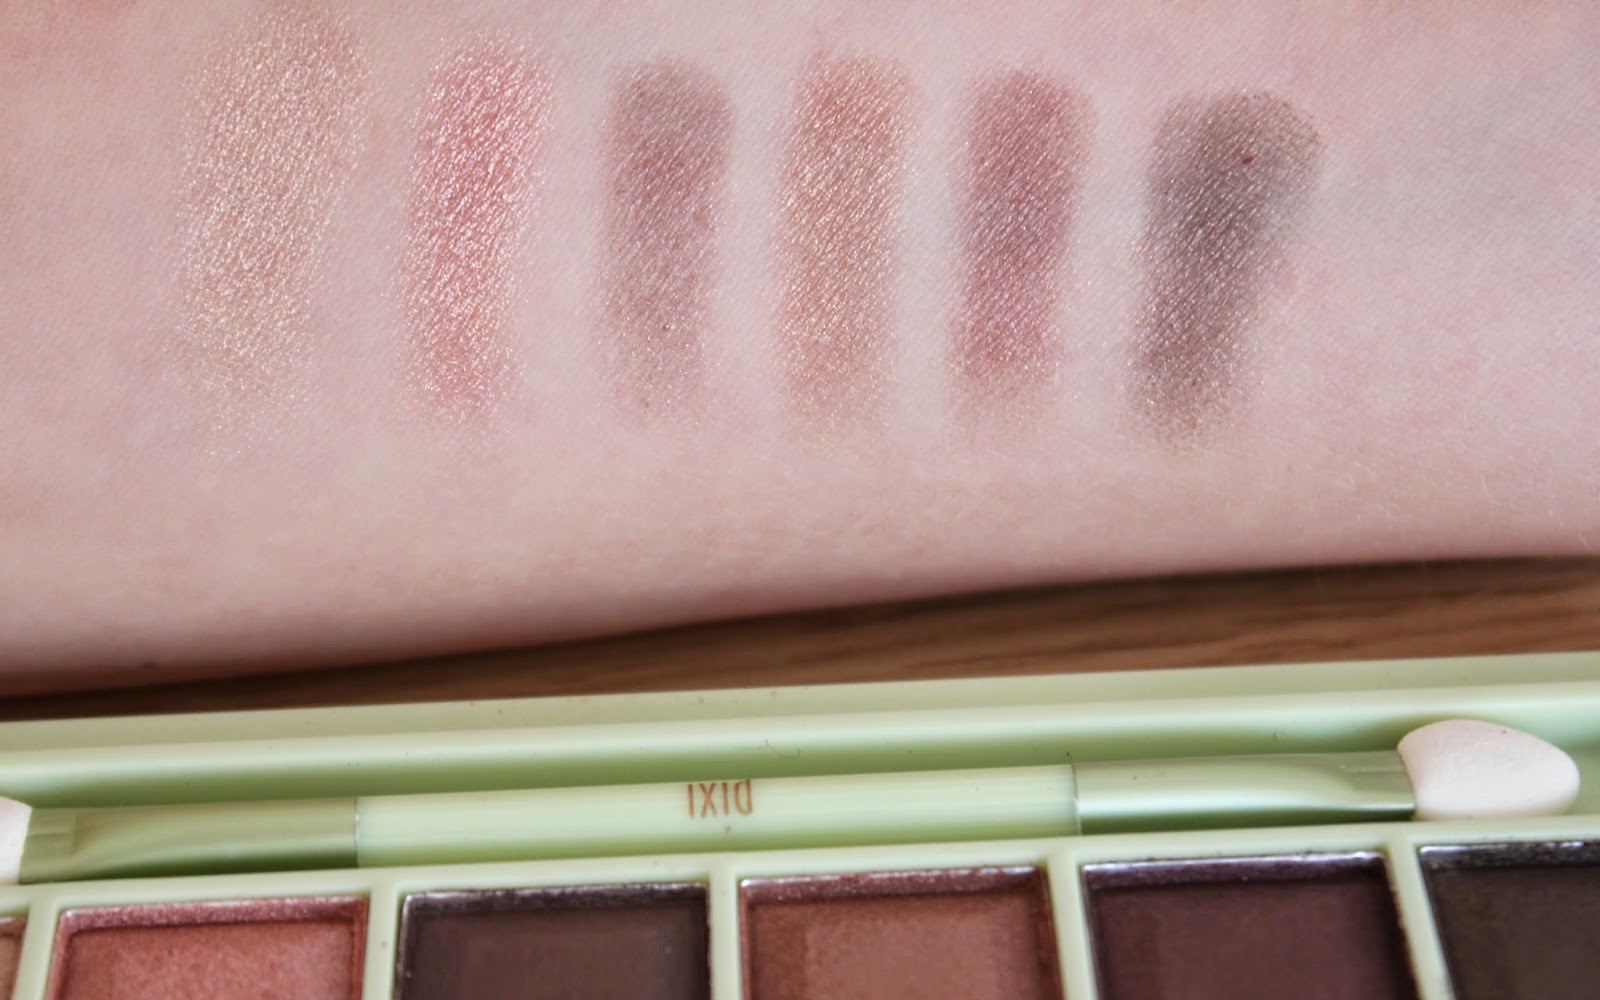 Pixi Mesmerizing Mineral Eyeshadow Palette Plum Quartz swatch and review